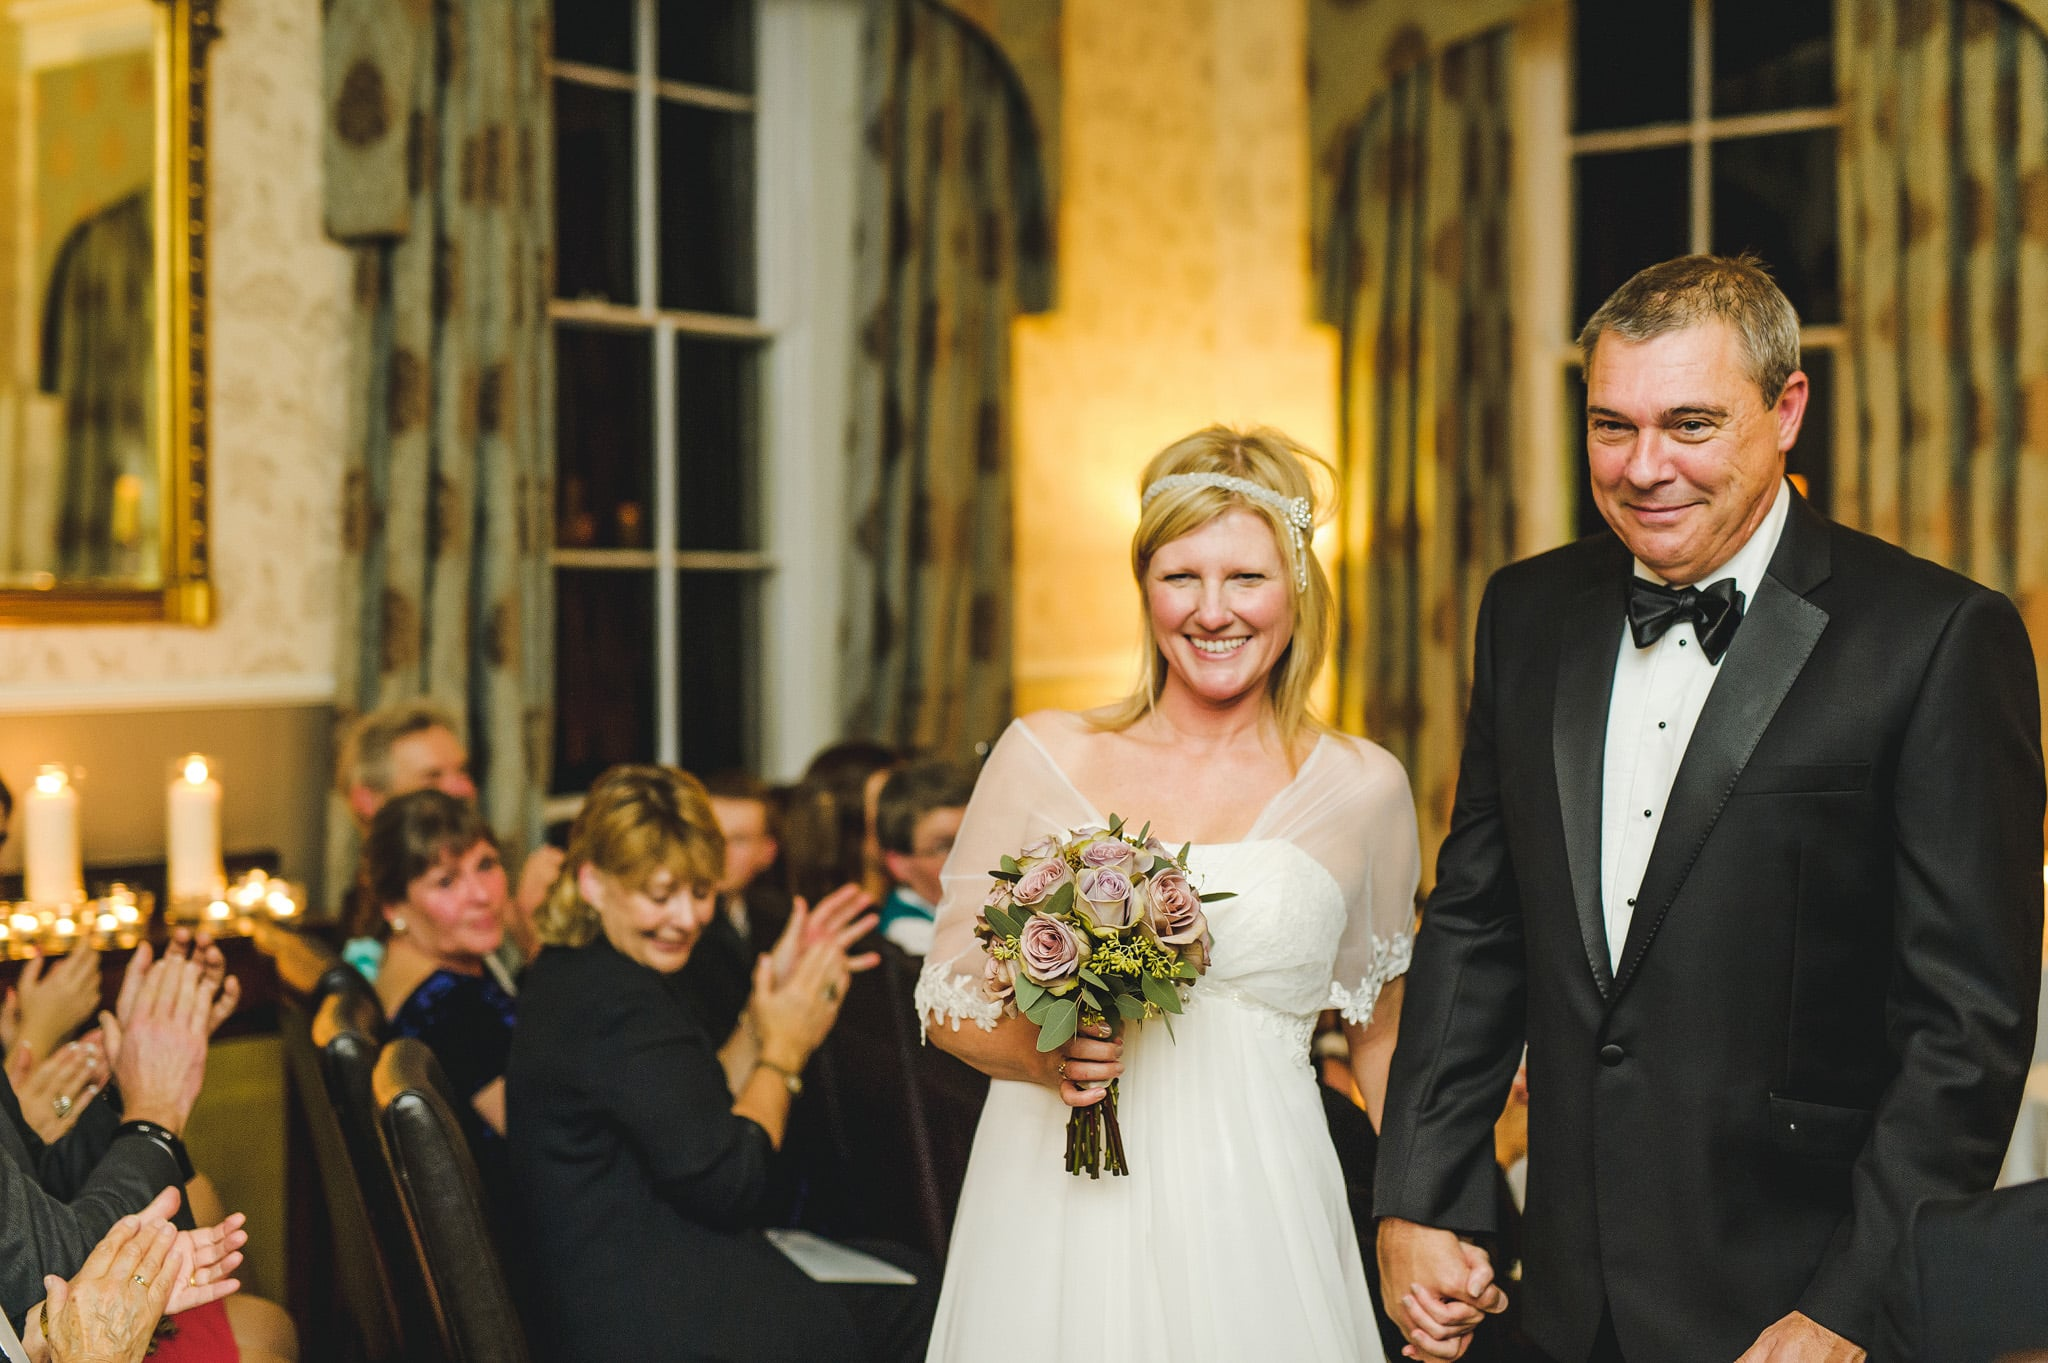 wedding photography midlands 67 - Midlands wedding photography - 2015 Review